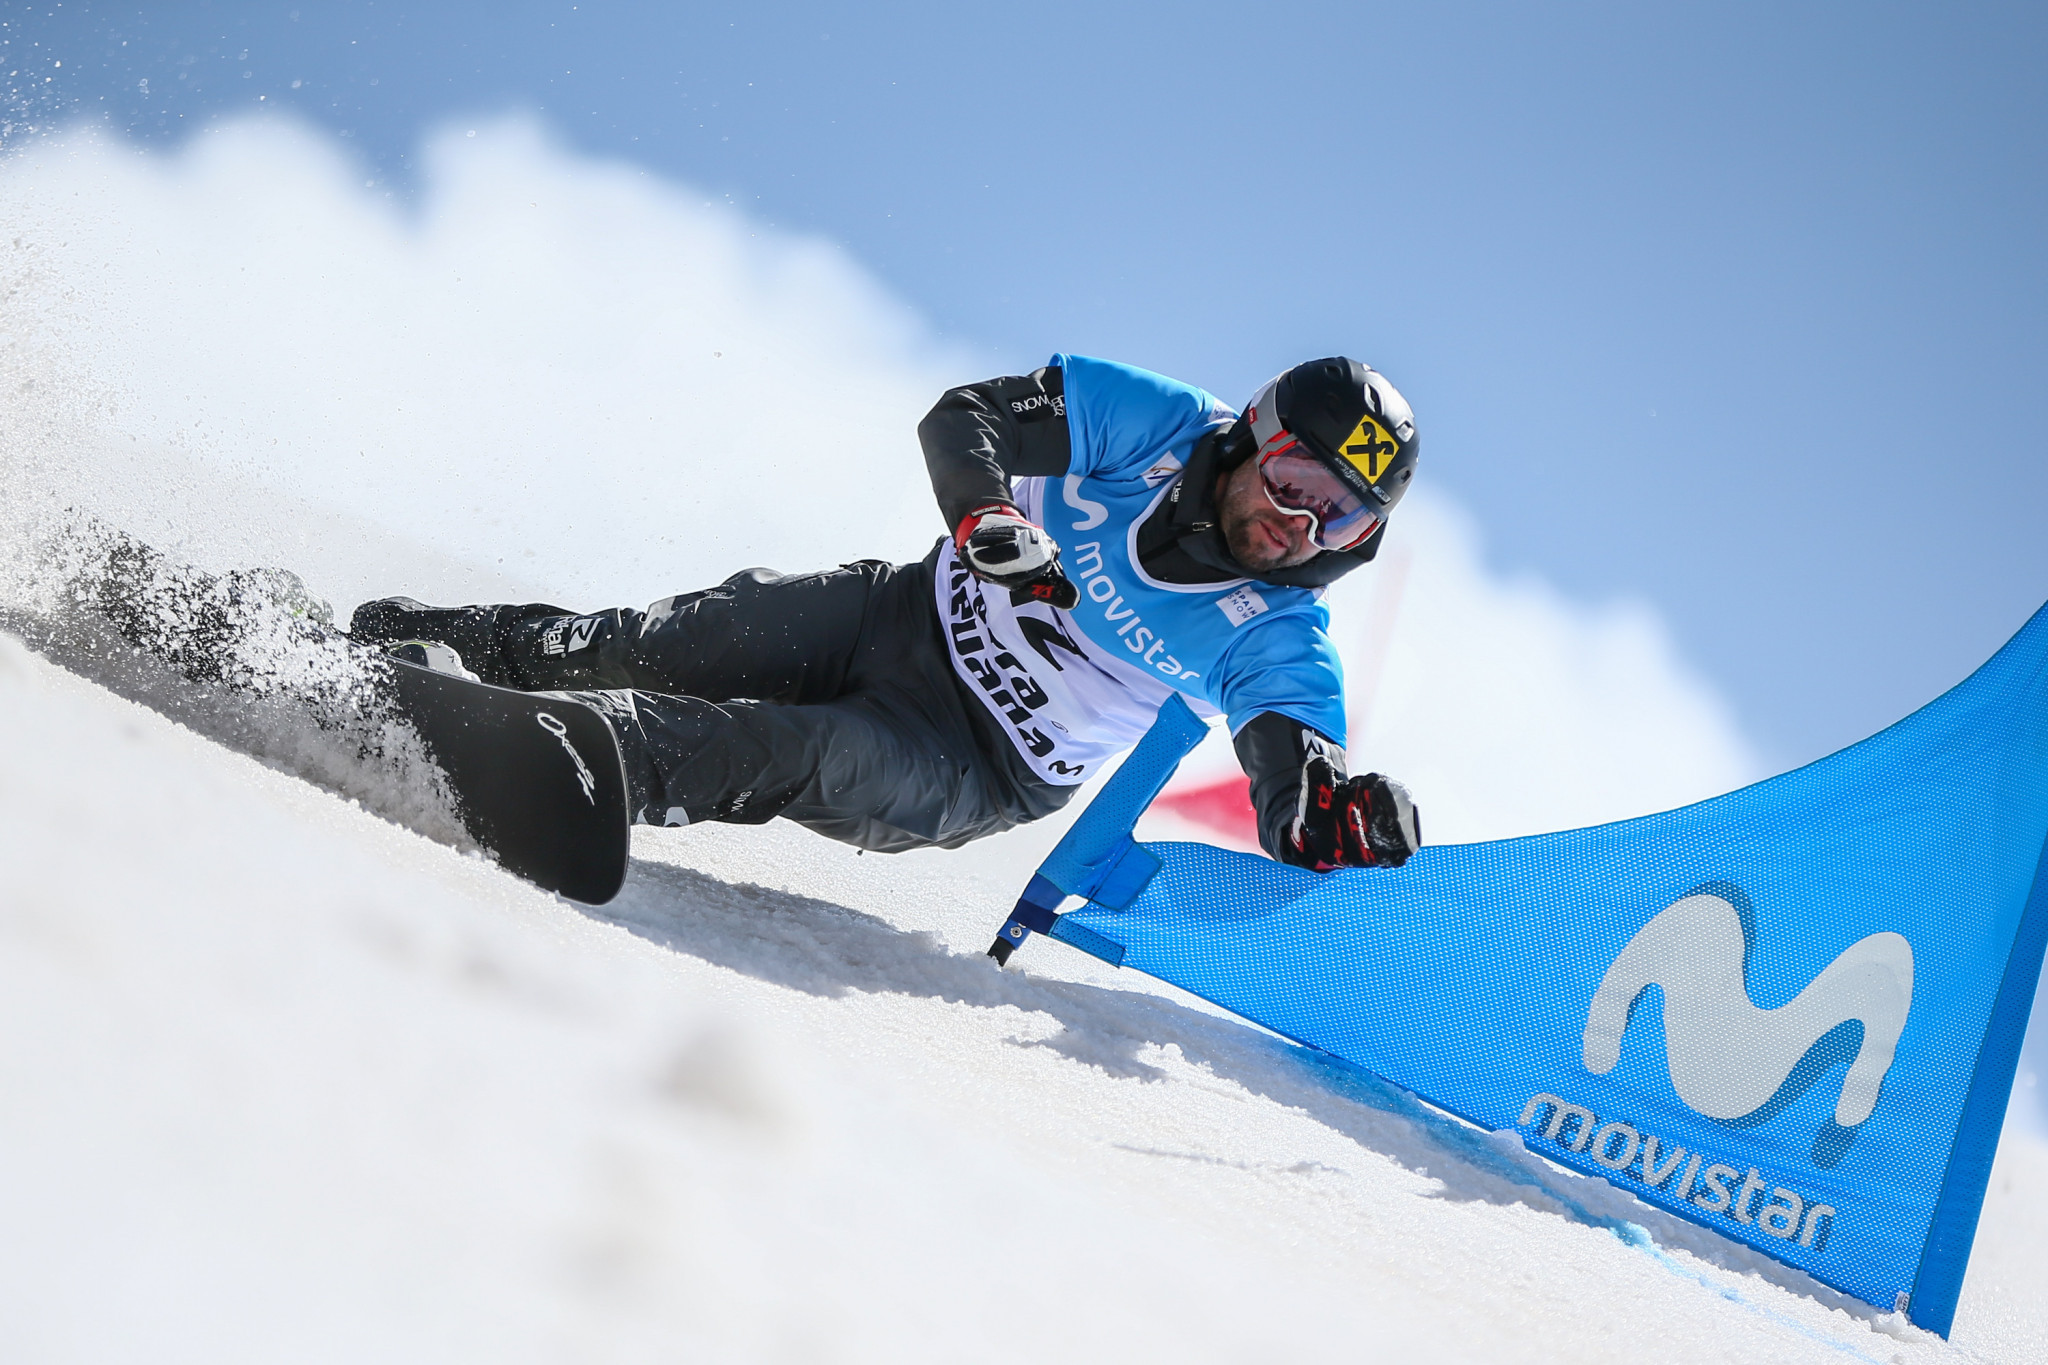 Prommegger and Riegler win team mixed parallel slalom Snowboard World Cup race for Austria